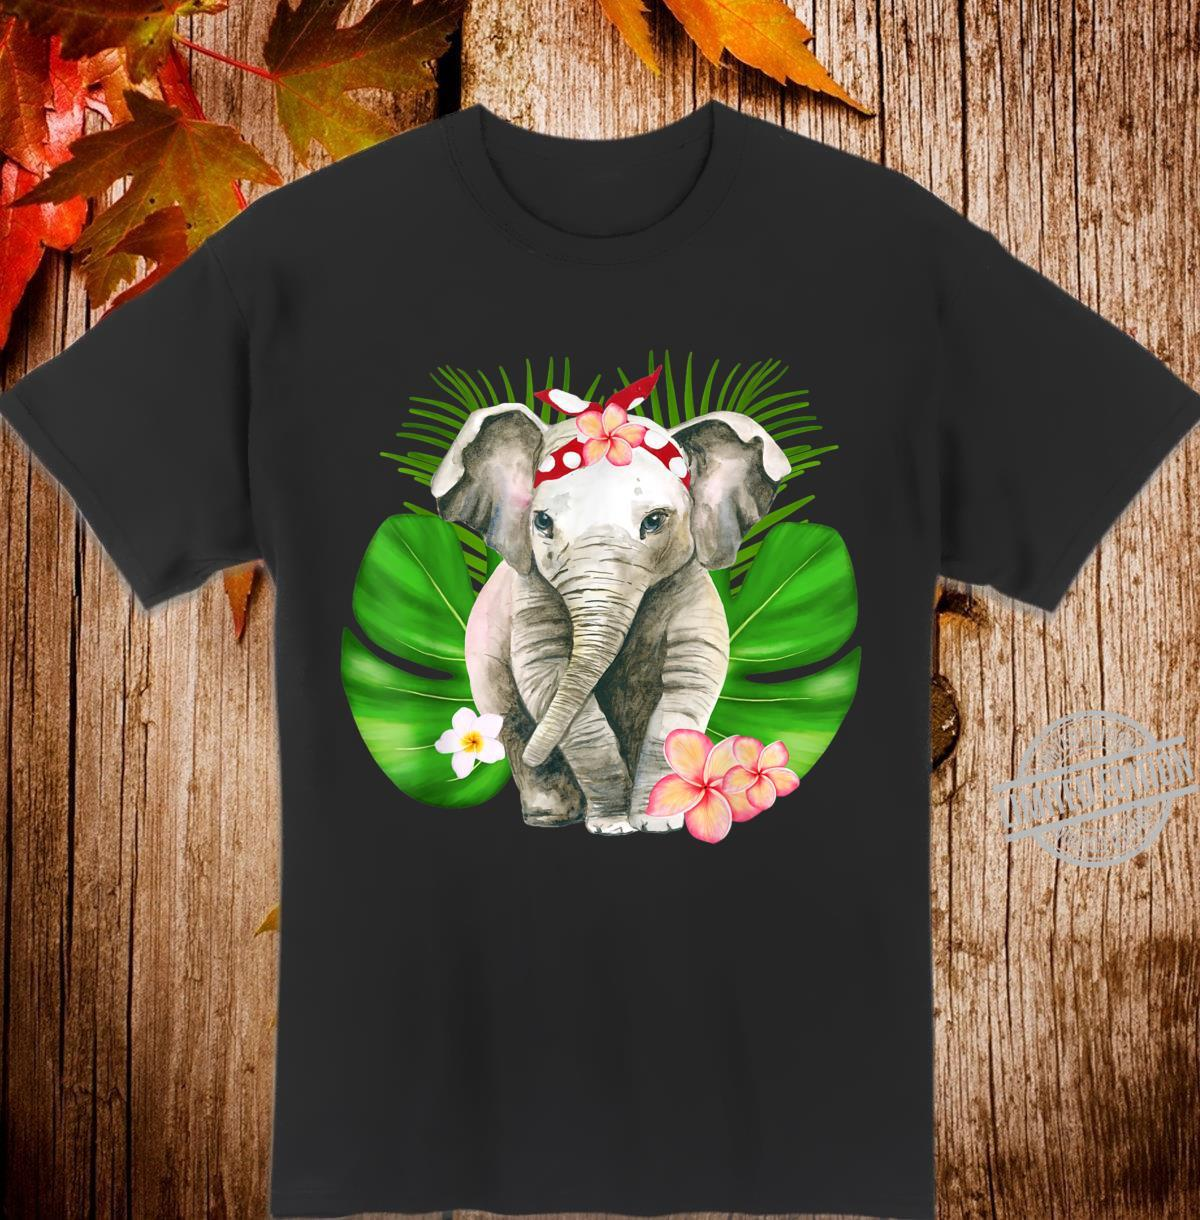 Cute Tropical Baby Elephant Red Head Bandana Frangipani Leaf Shirt